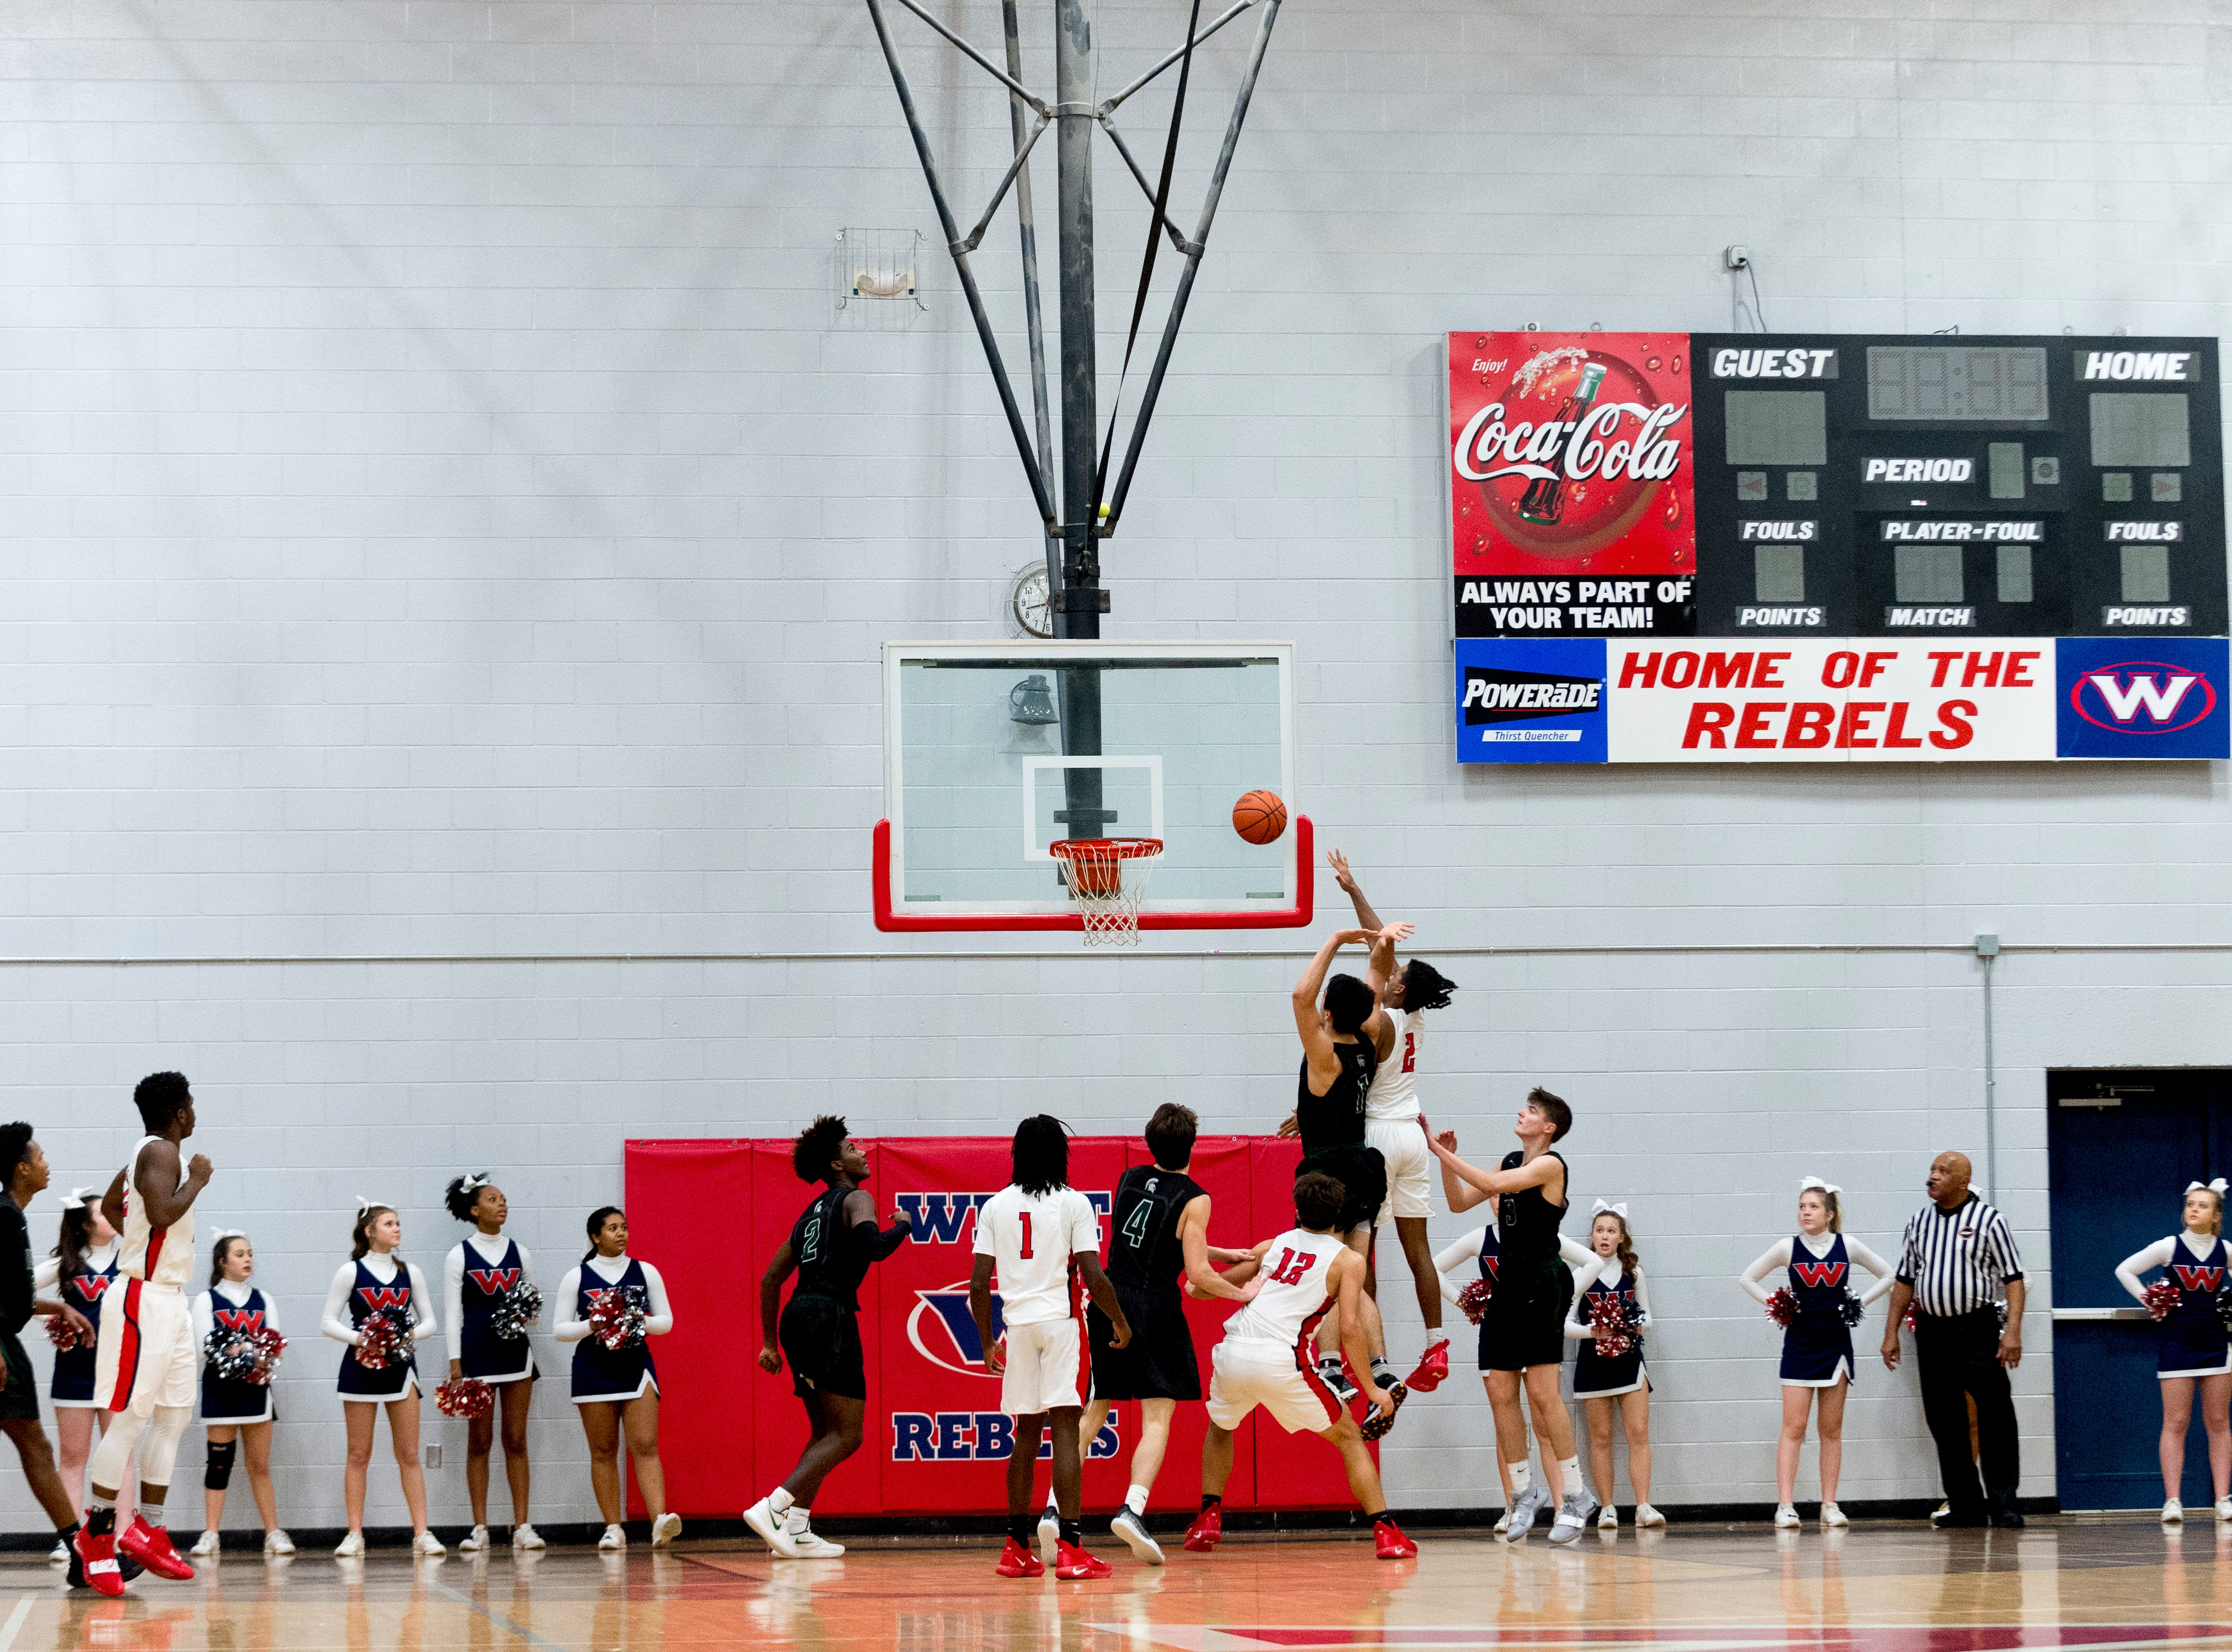 Players compete during a game between West and Webb at West High School in Knoxville, Tennessee on Friday, January 4, 2019.